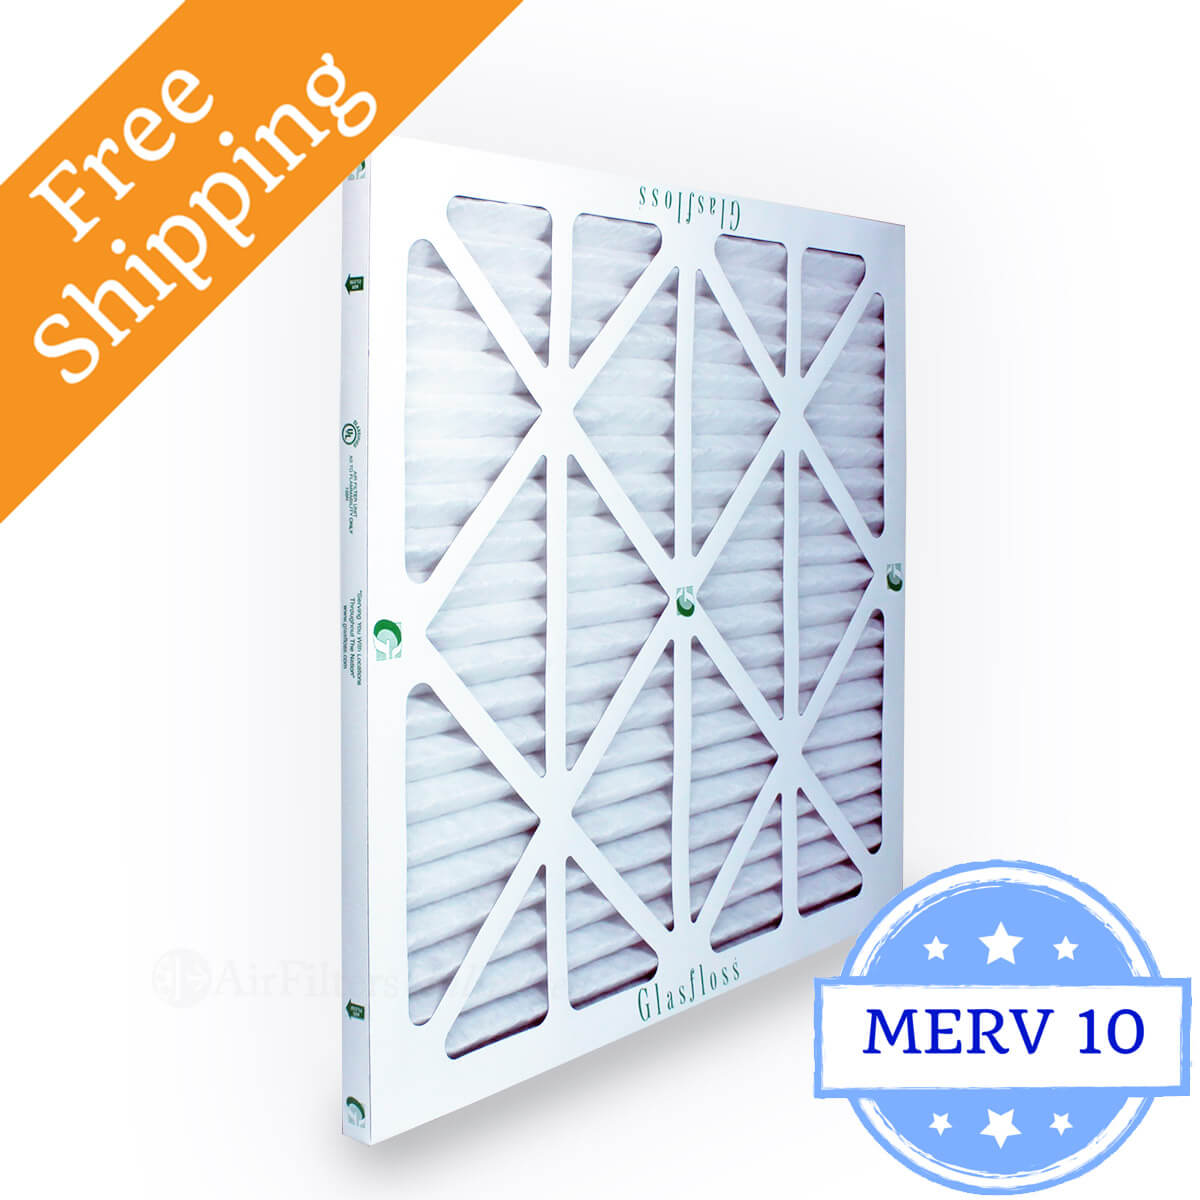 Glasfloss 14x14x1 Air Filter ZL Series